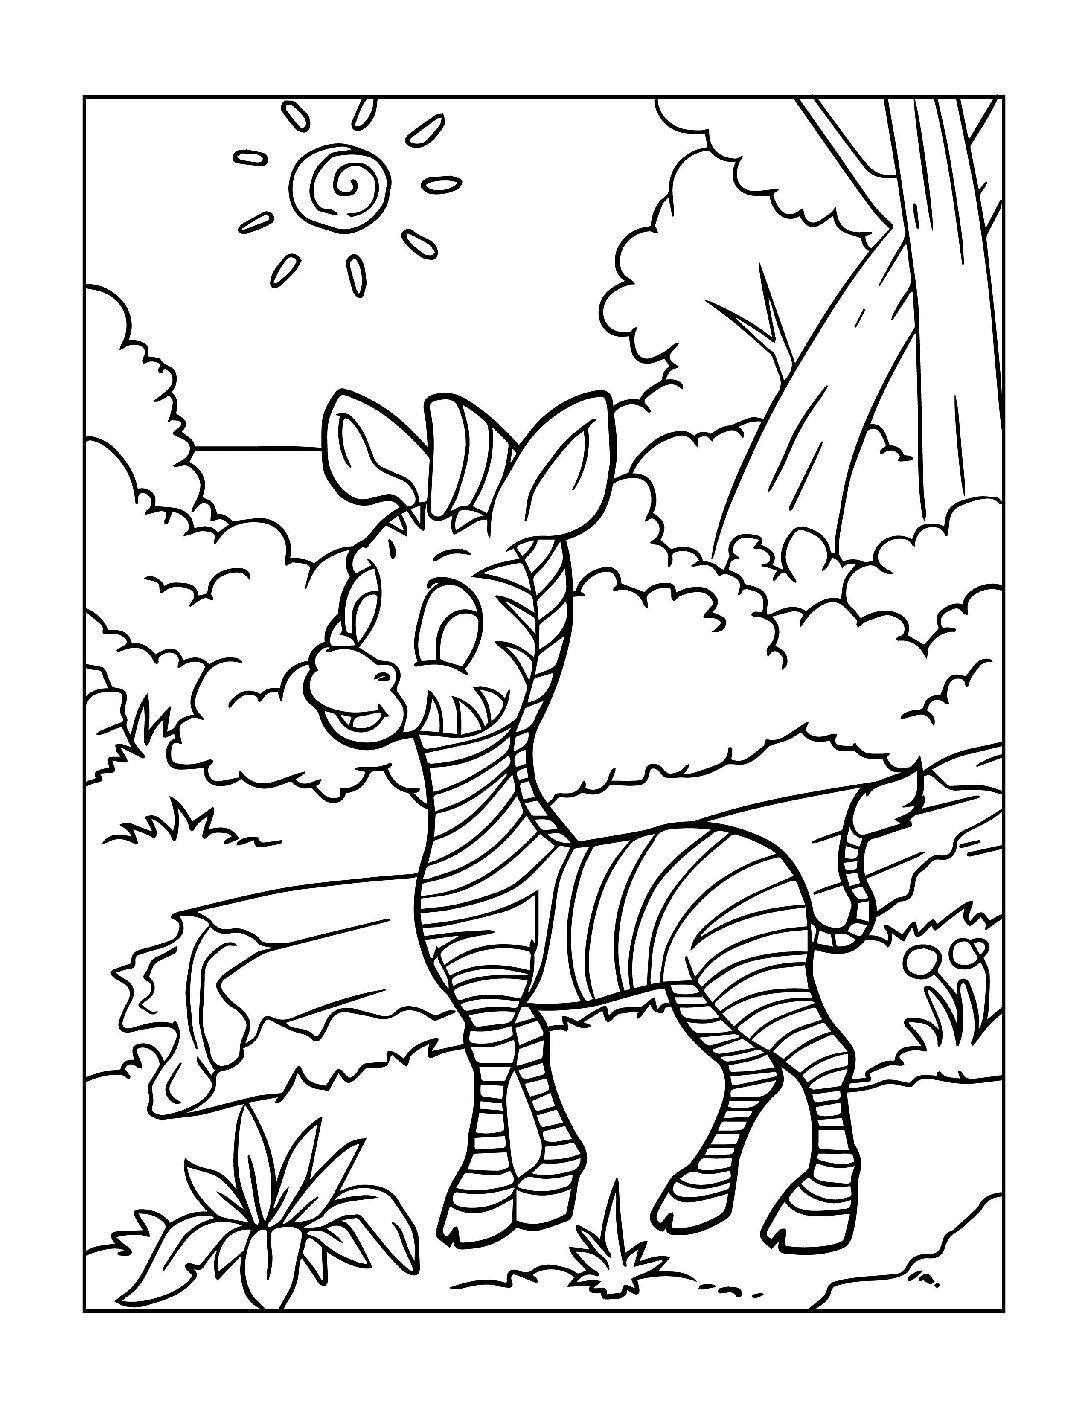 Coloring-Pages-Zoo-Animals-14-01-1-pdf Free Printable  Zoo Animals Colouring Pages